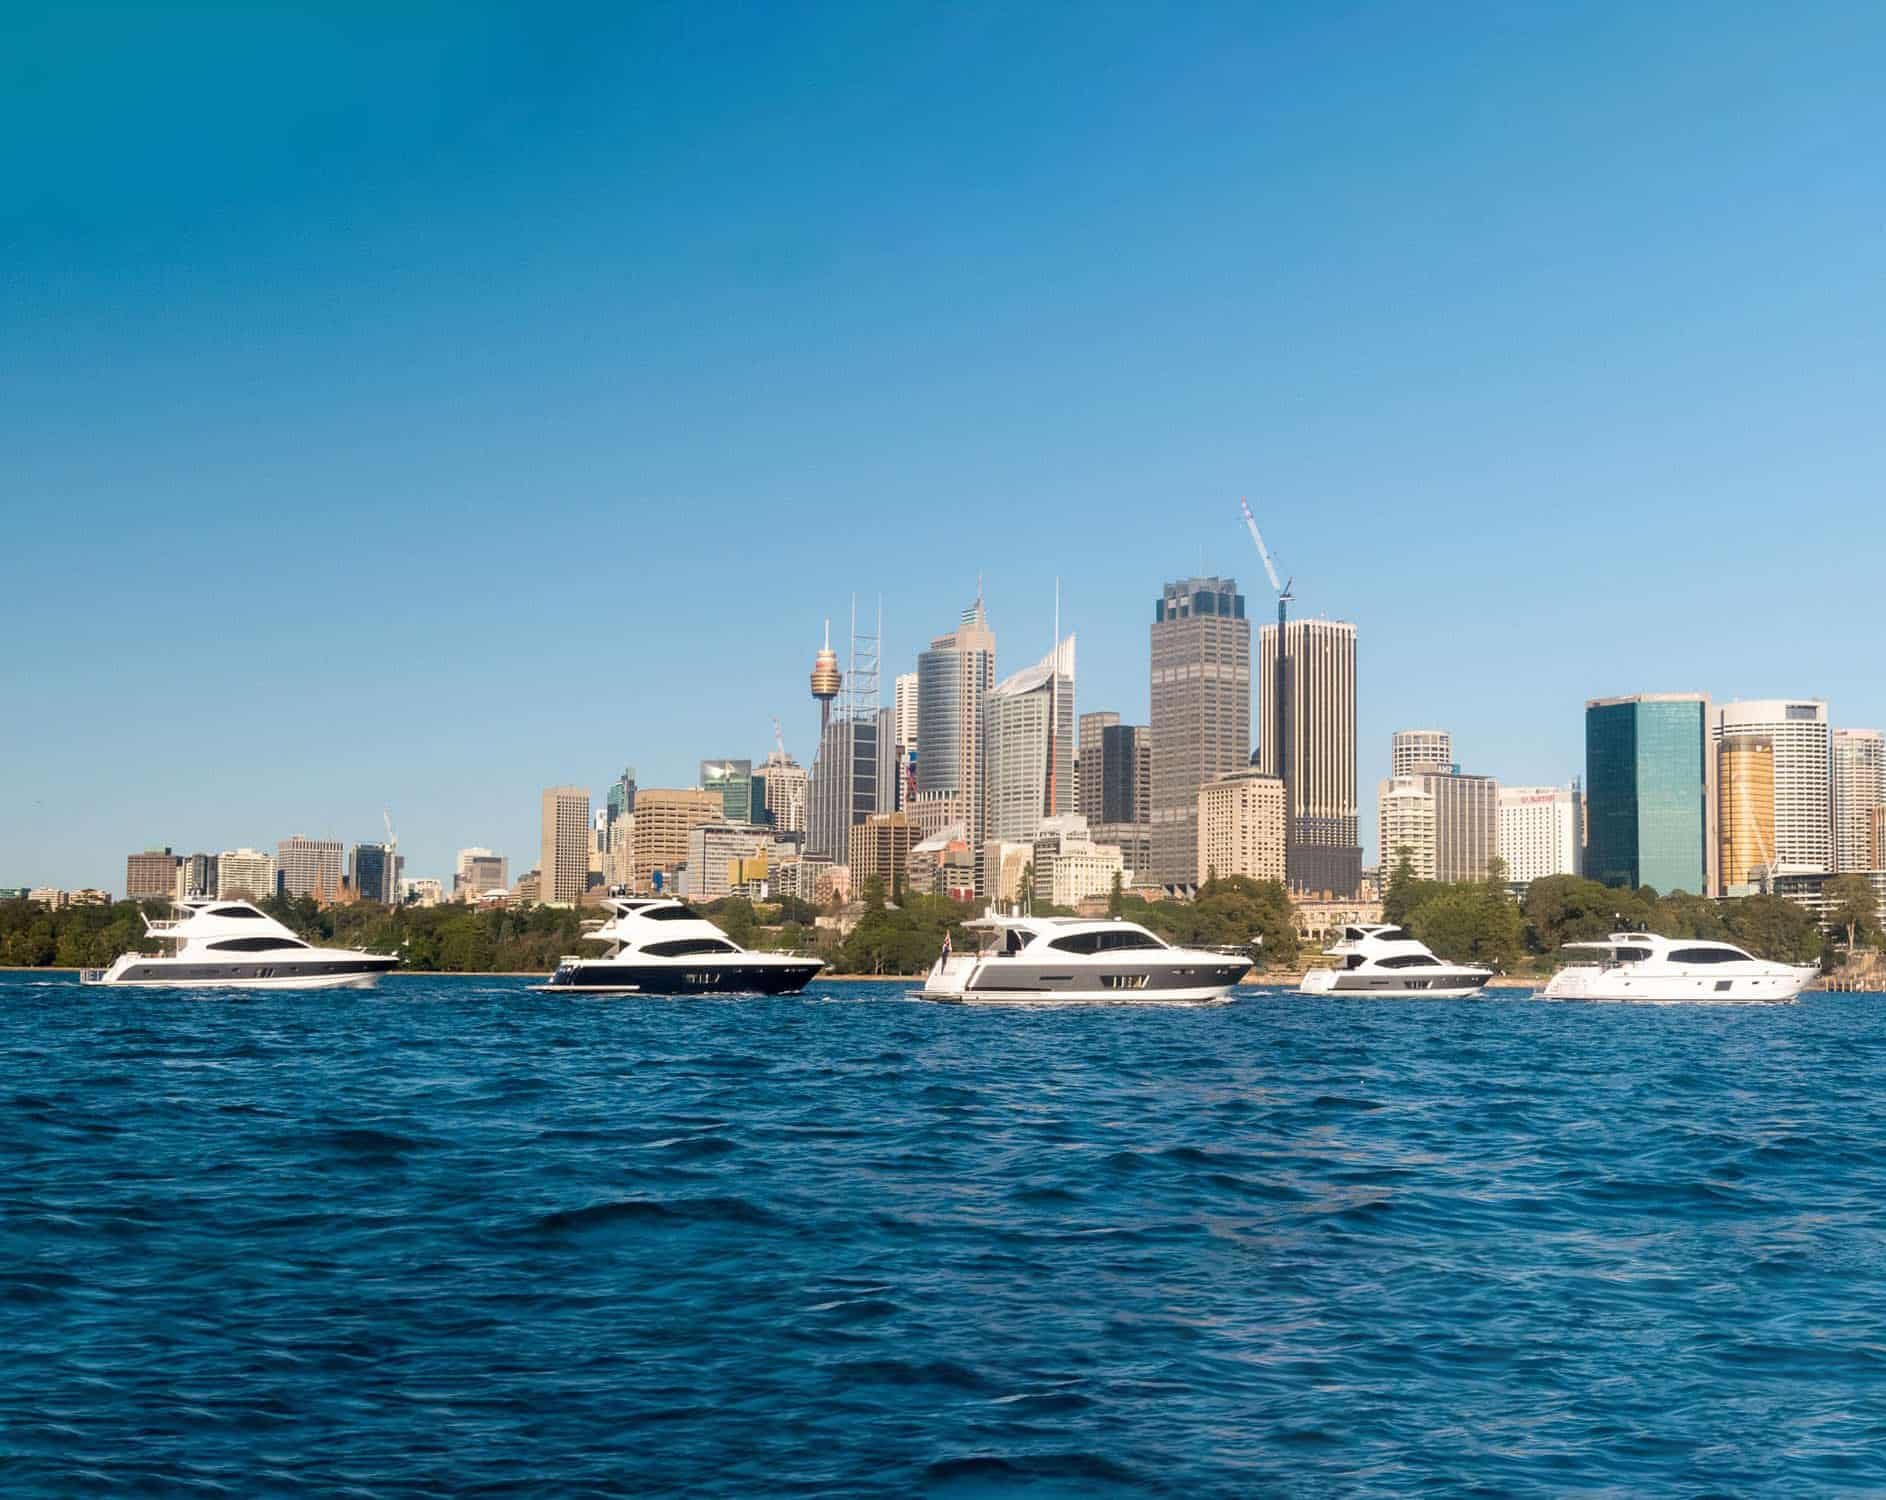 Whitehaven yachts with Sydney skyline in background